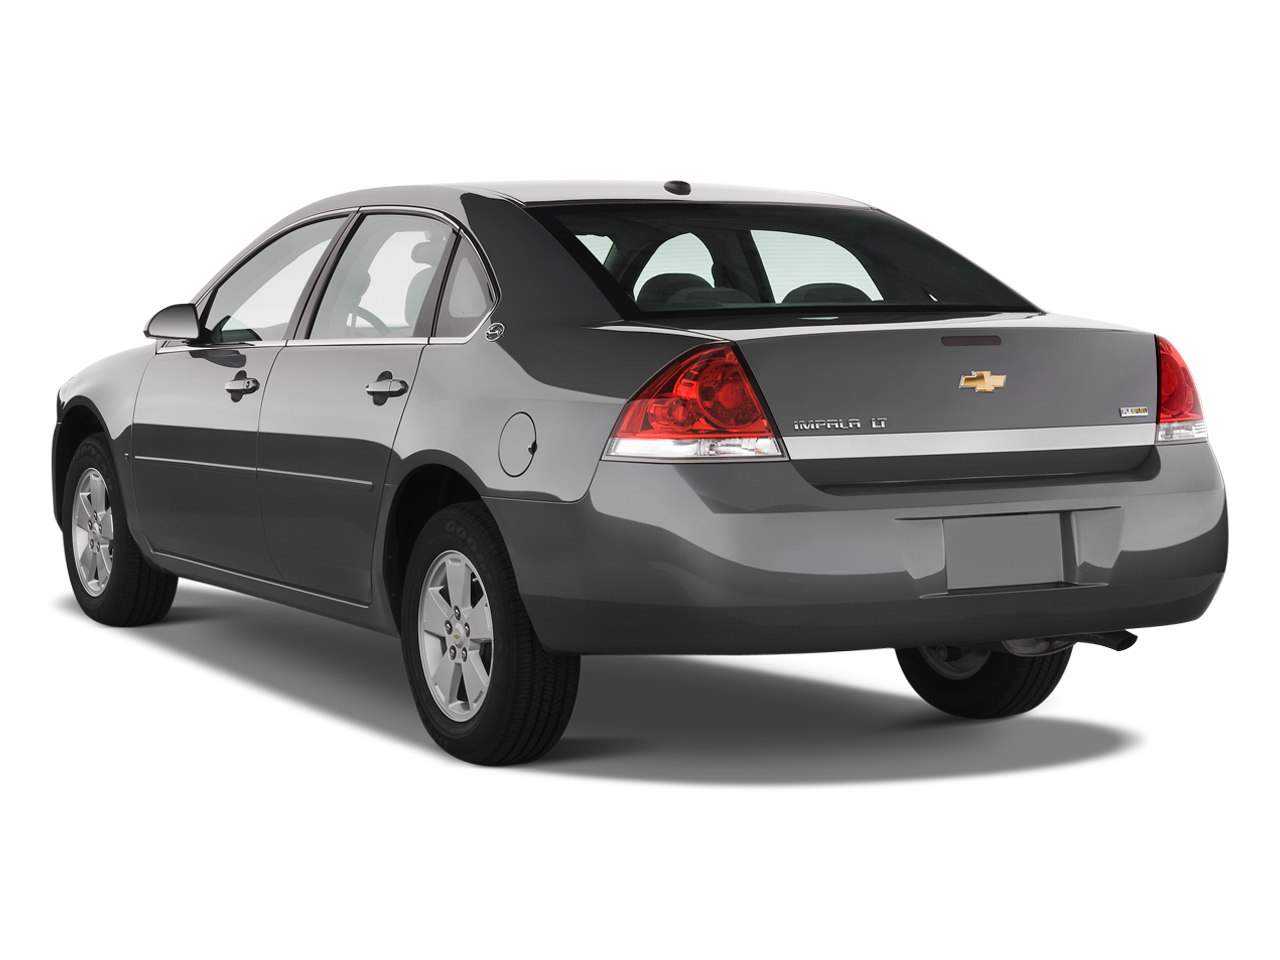 2012 Chevrolet Impala Goes 21st Century New Power